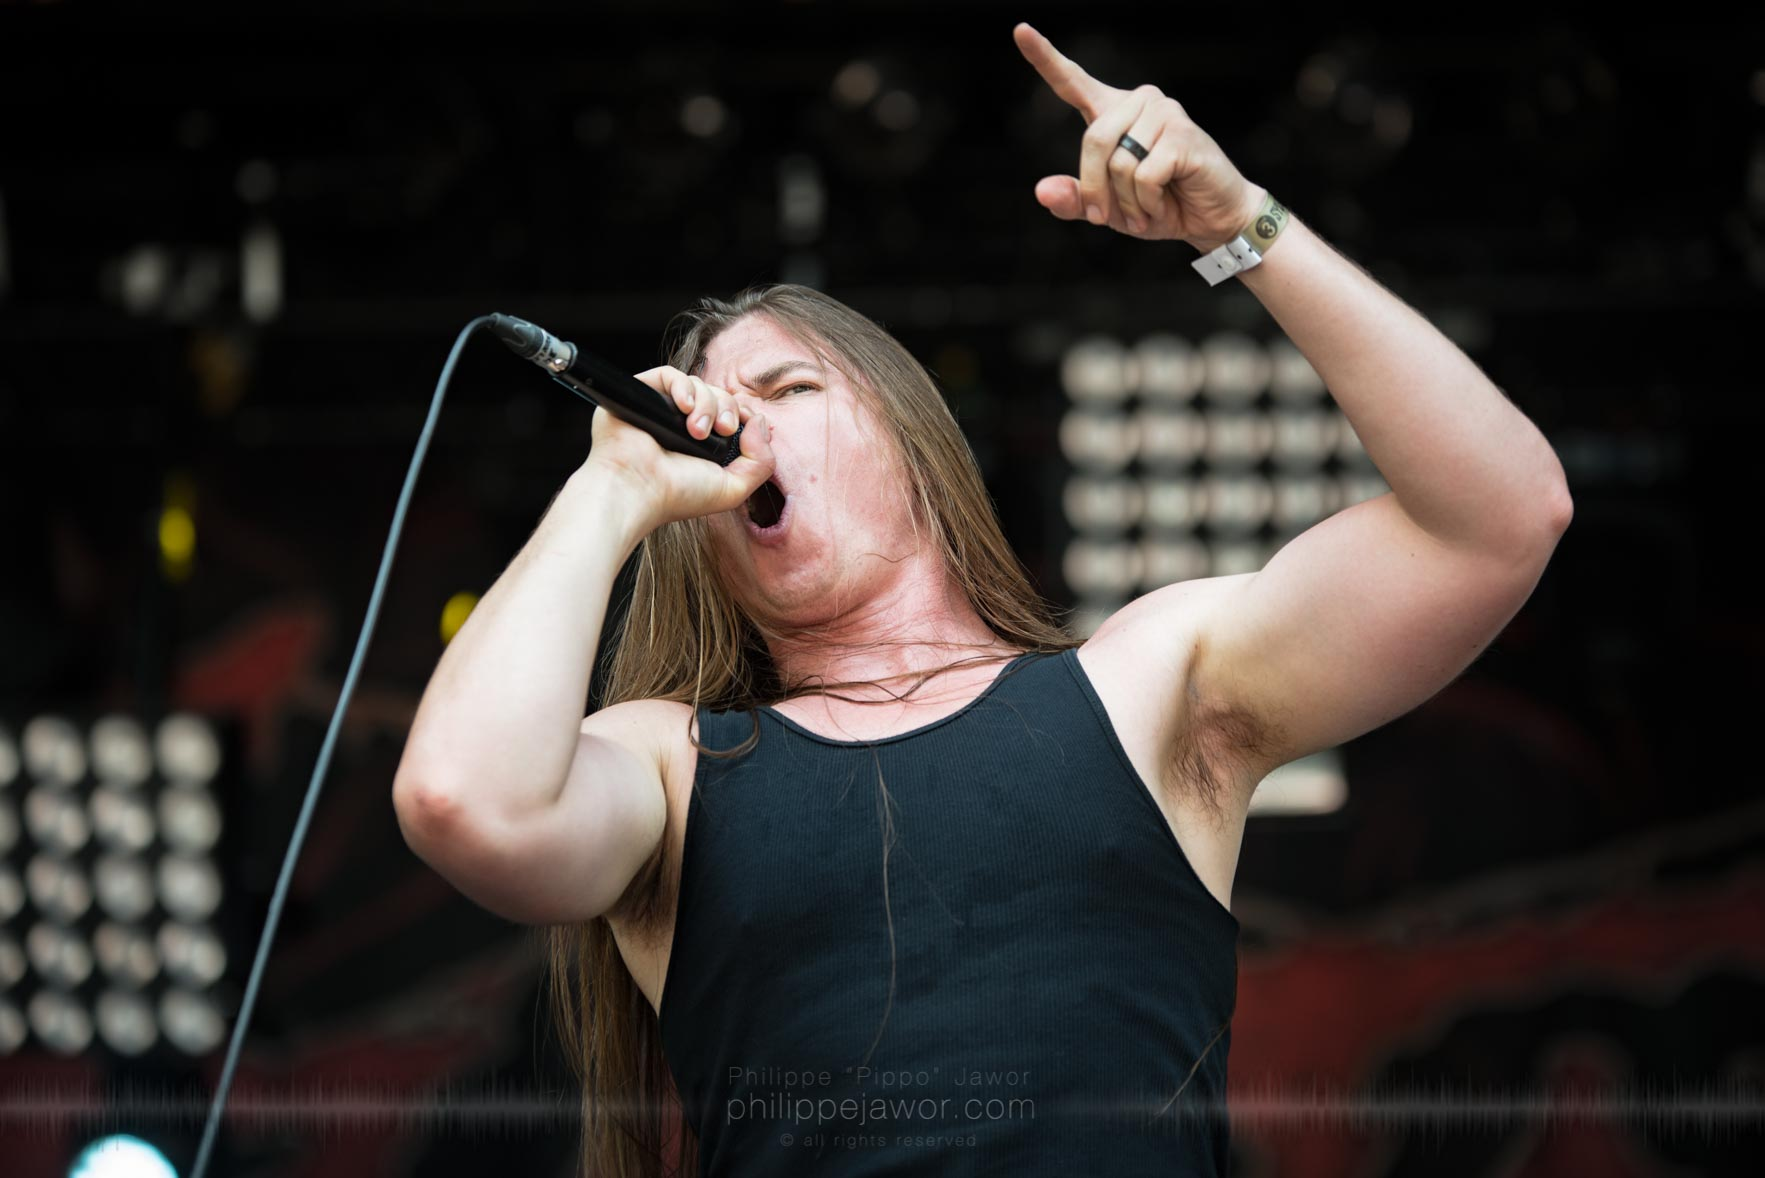 The Canadian technical death metal band Cryptopsy live at Sylak Open Air festival, Saint Maurice de Gourdans, France, August 2017.  On assignment for Metal Obs' Magazine All rights reserved.